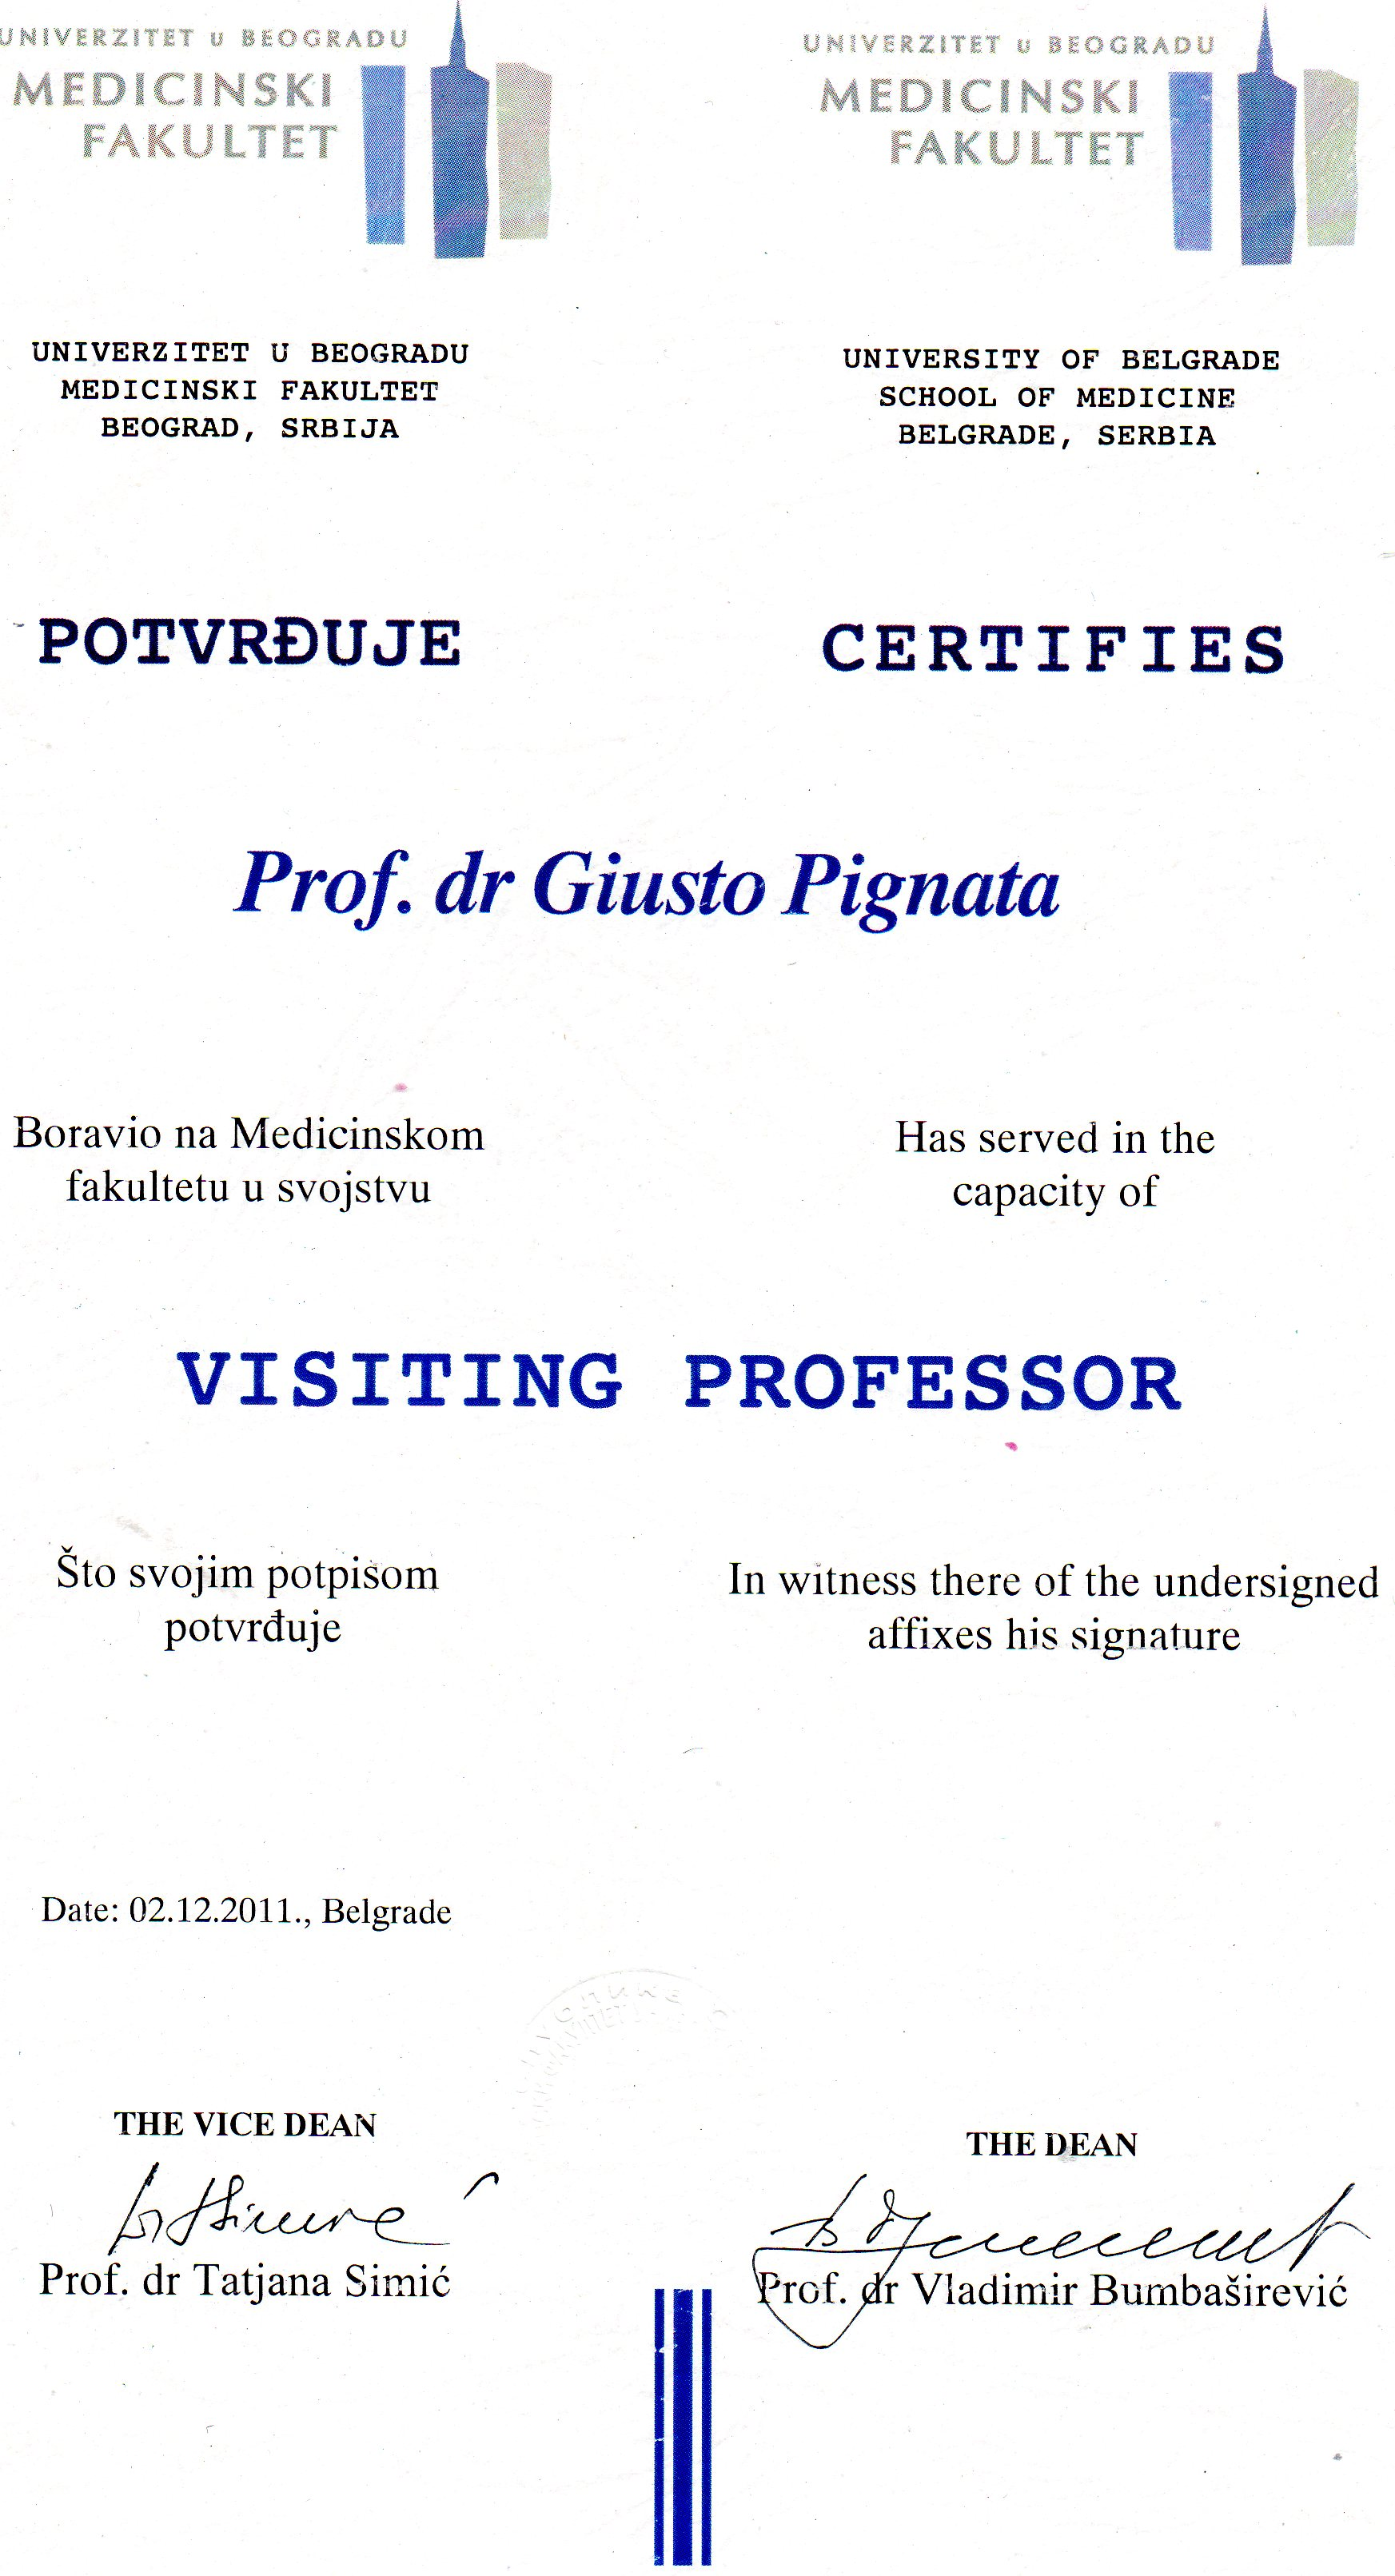 visiting professor